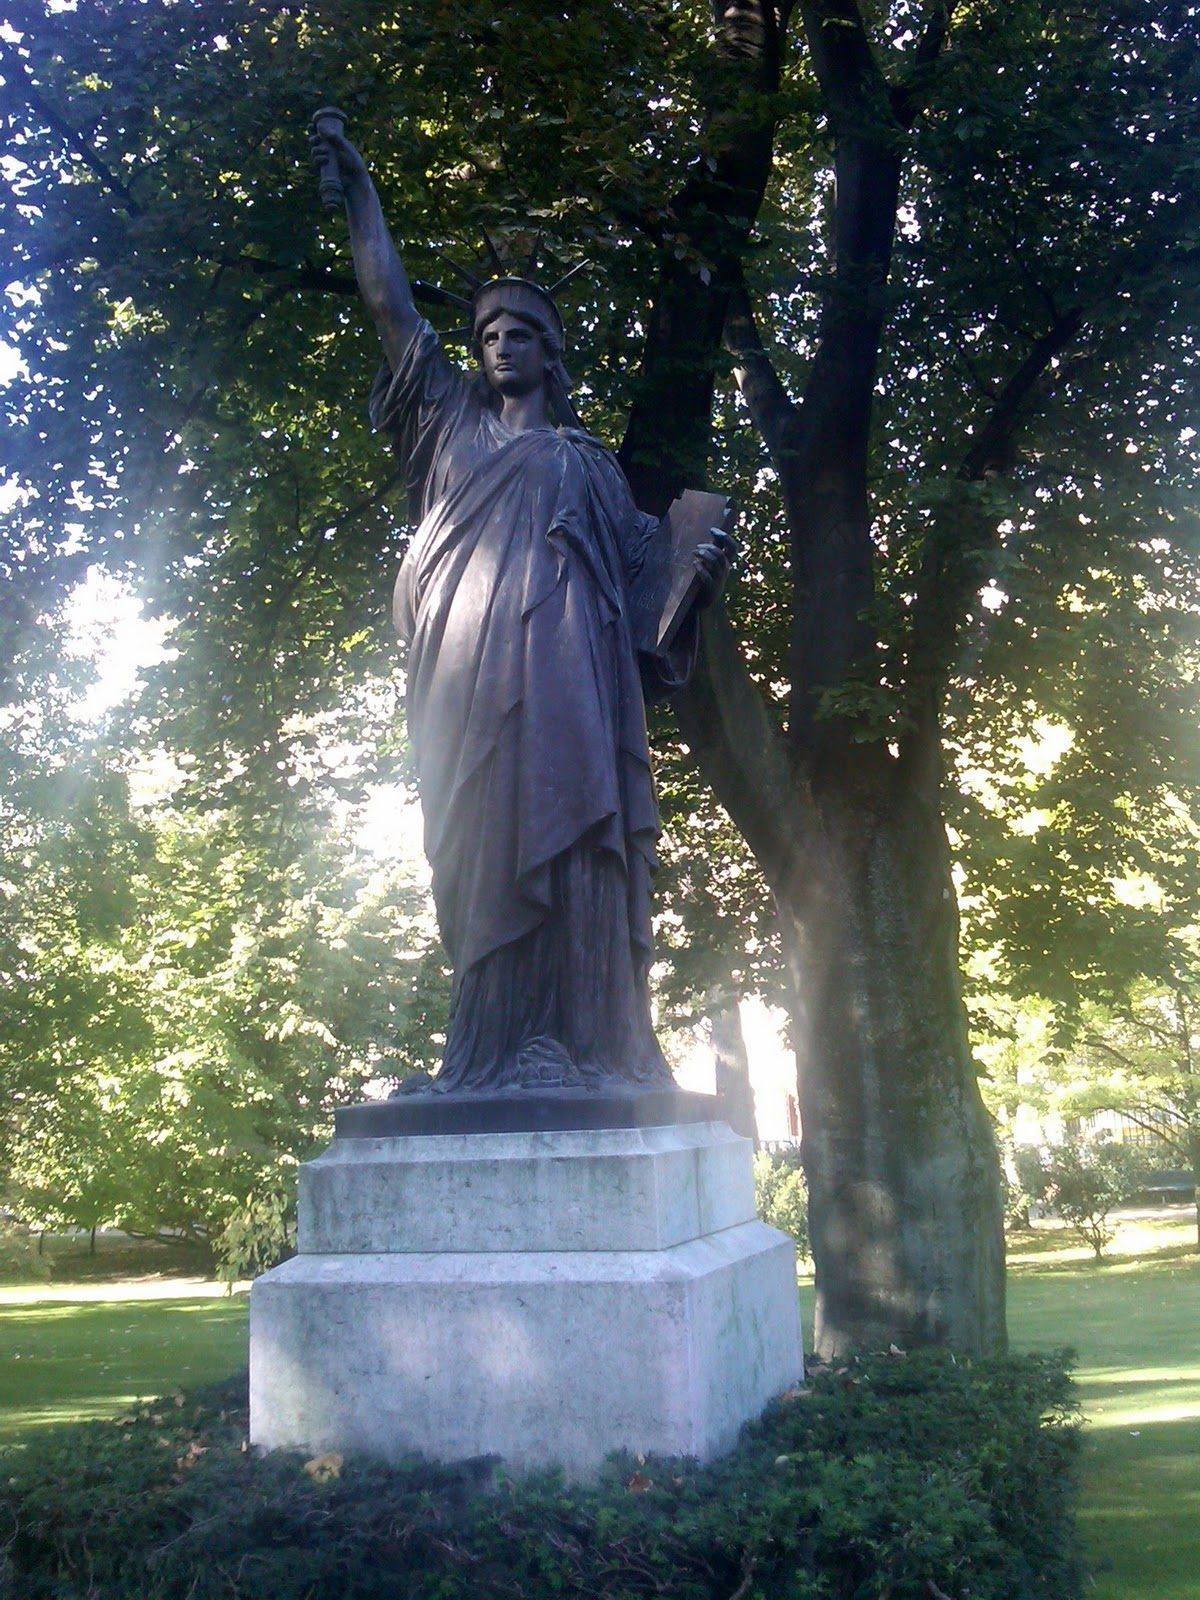 Music of the spheres europe on 140 characters a day - Jardin du luxembourg statue of liberty ...